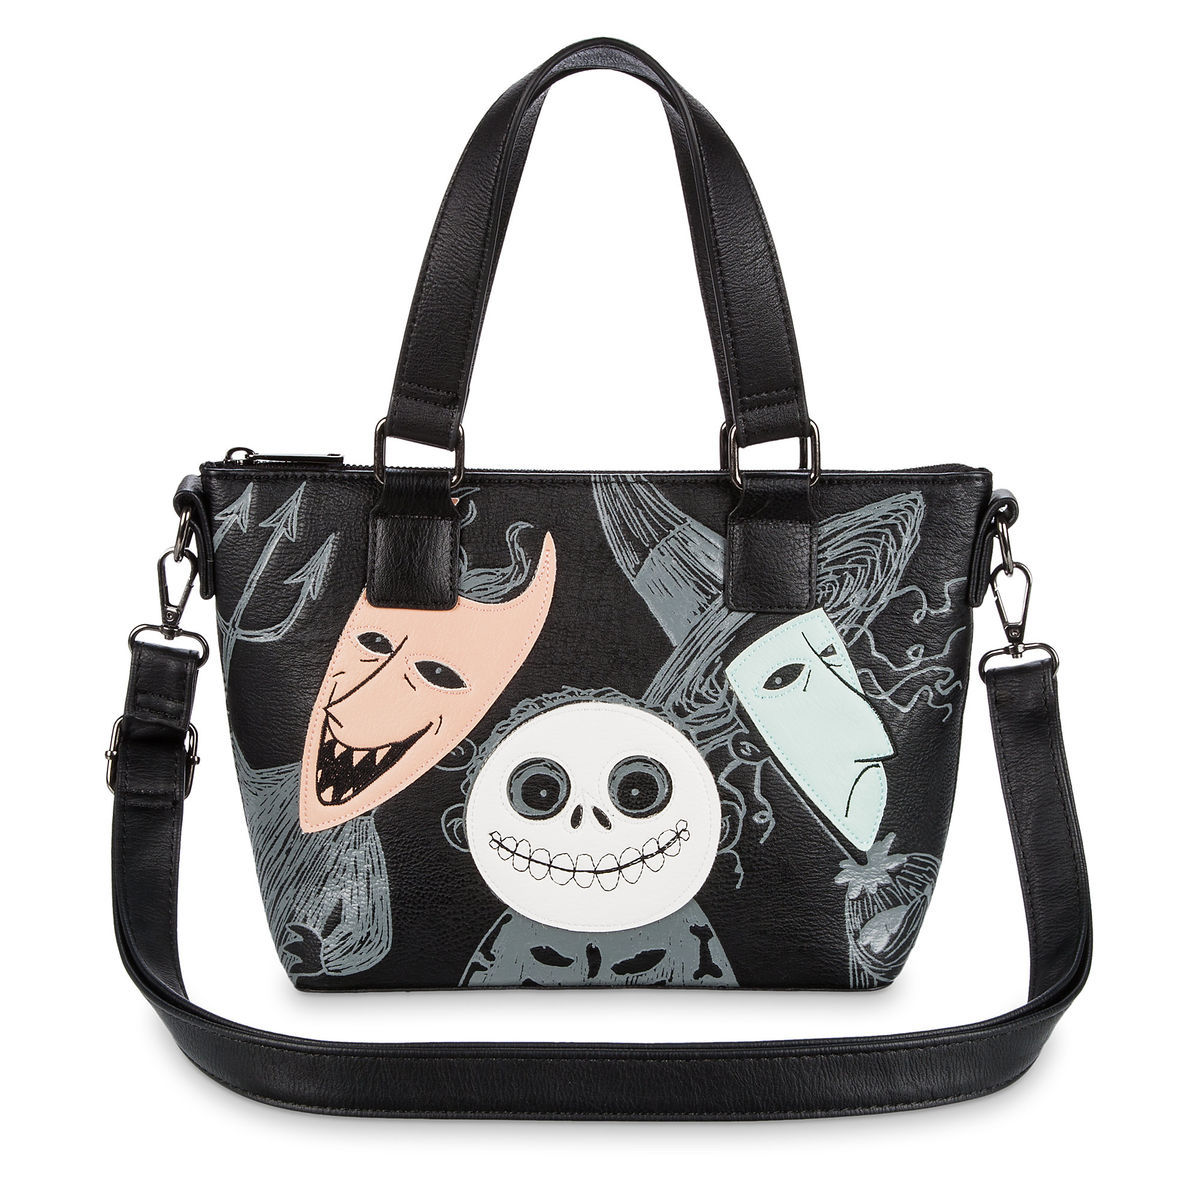 Lock, Shock, and Barrel Fashion Bag | shopDisney